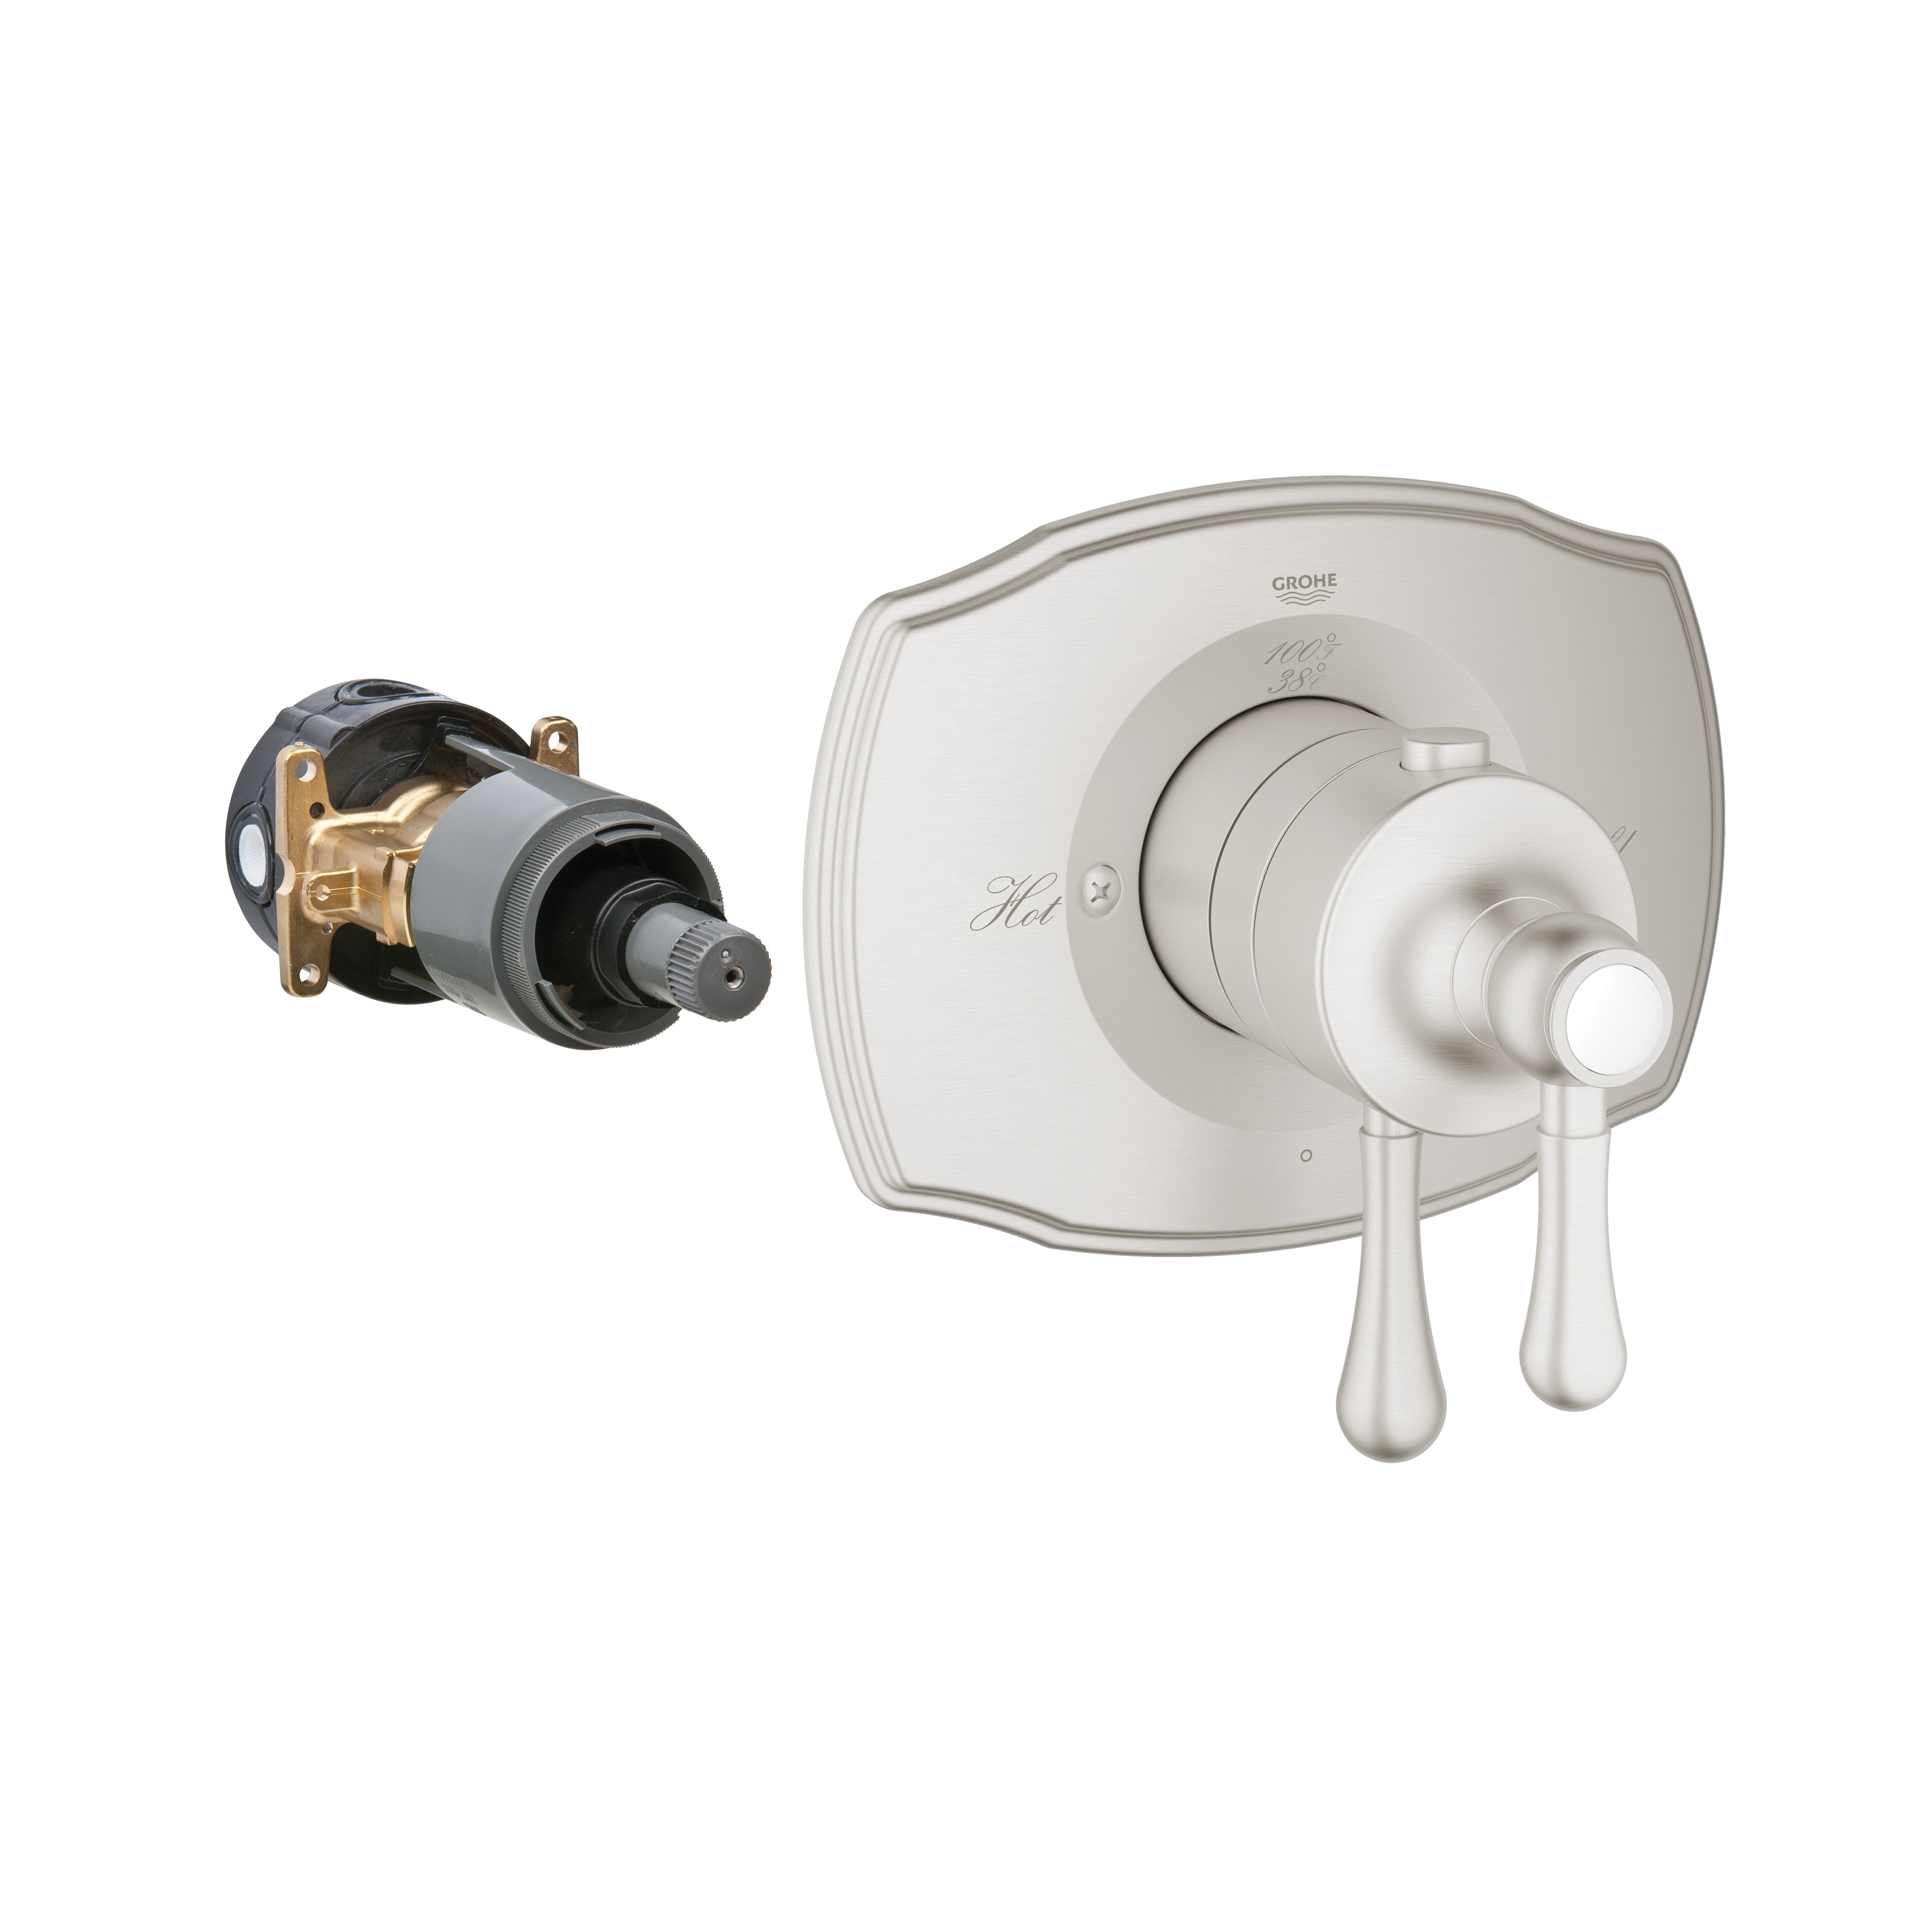 GROHE 19822EN0 GrohFlex™ 2000 1-Function Trim, 6.3 gpm Shower, Hand Shower Yes/No: No, StarLight® Brushed Nickel